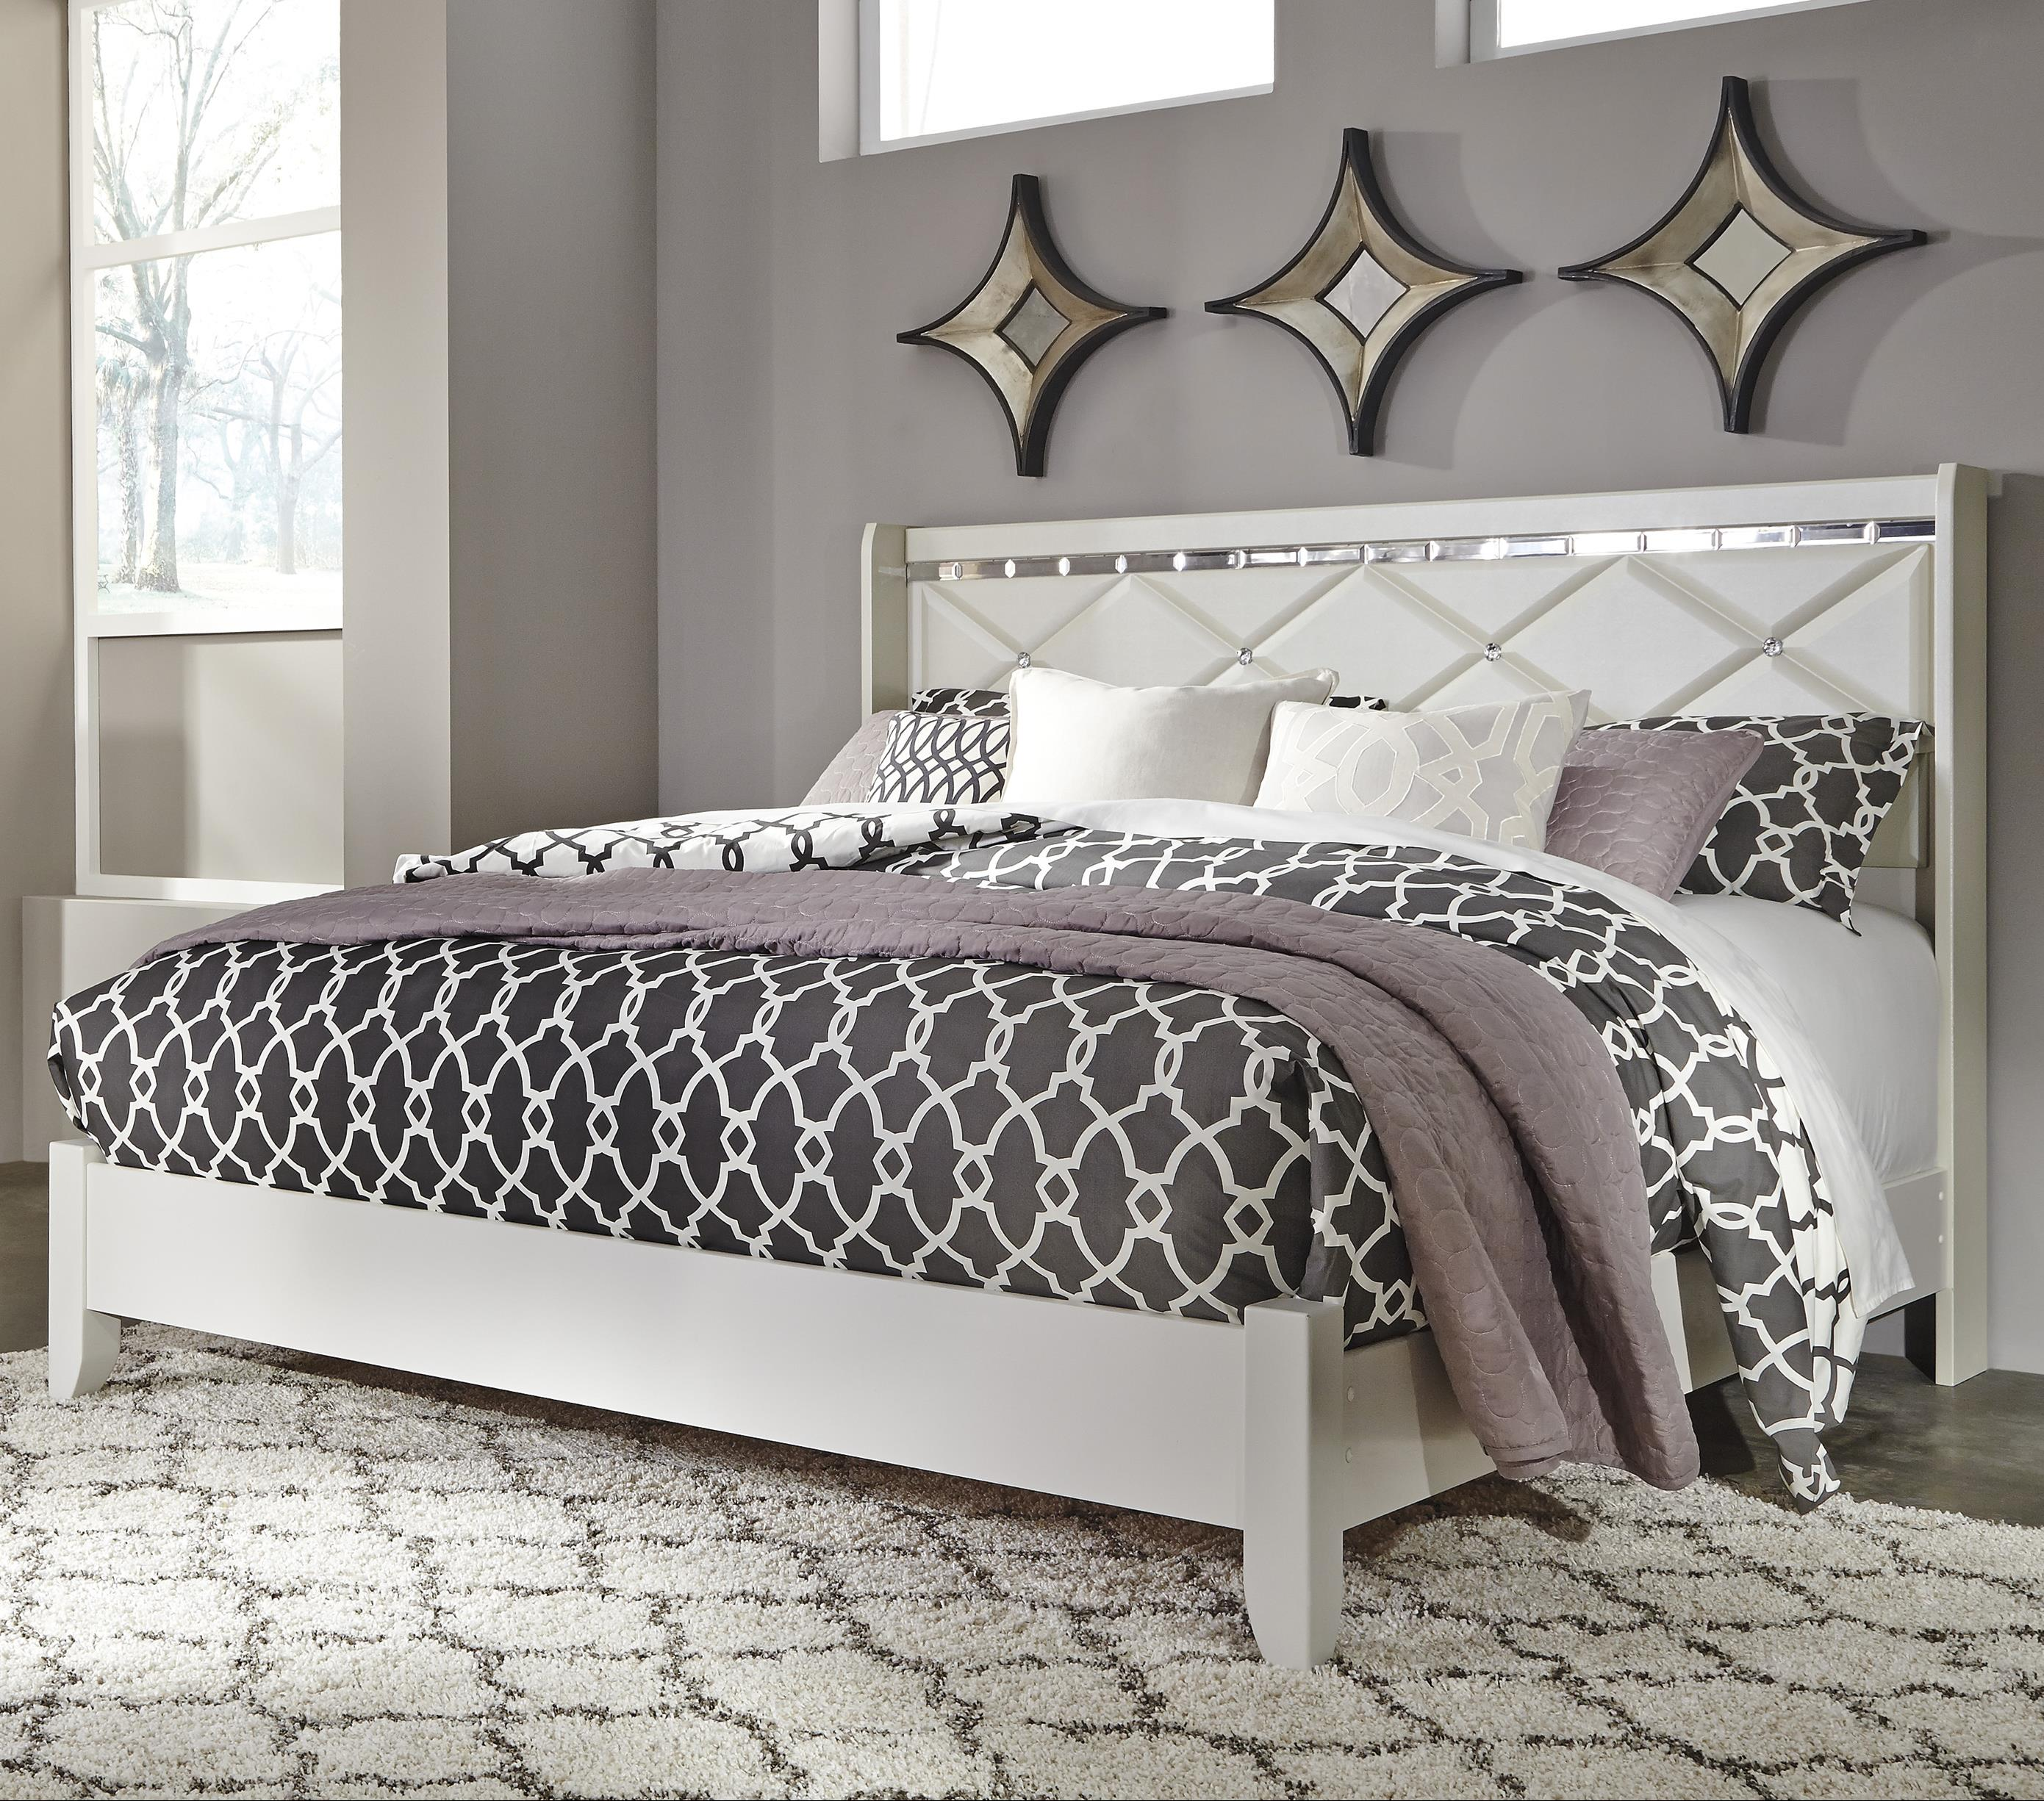 Signature Design By Ashley Dreamur King Panel Bed With Faux Crystals Dream Home Furniture